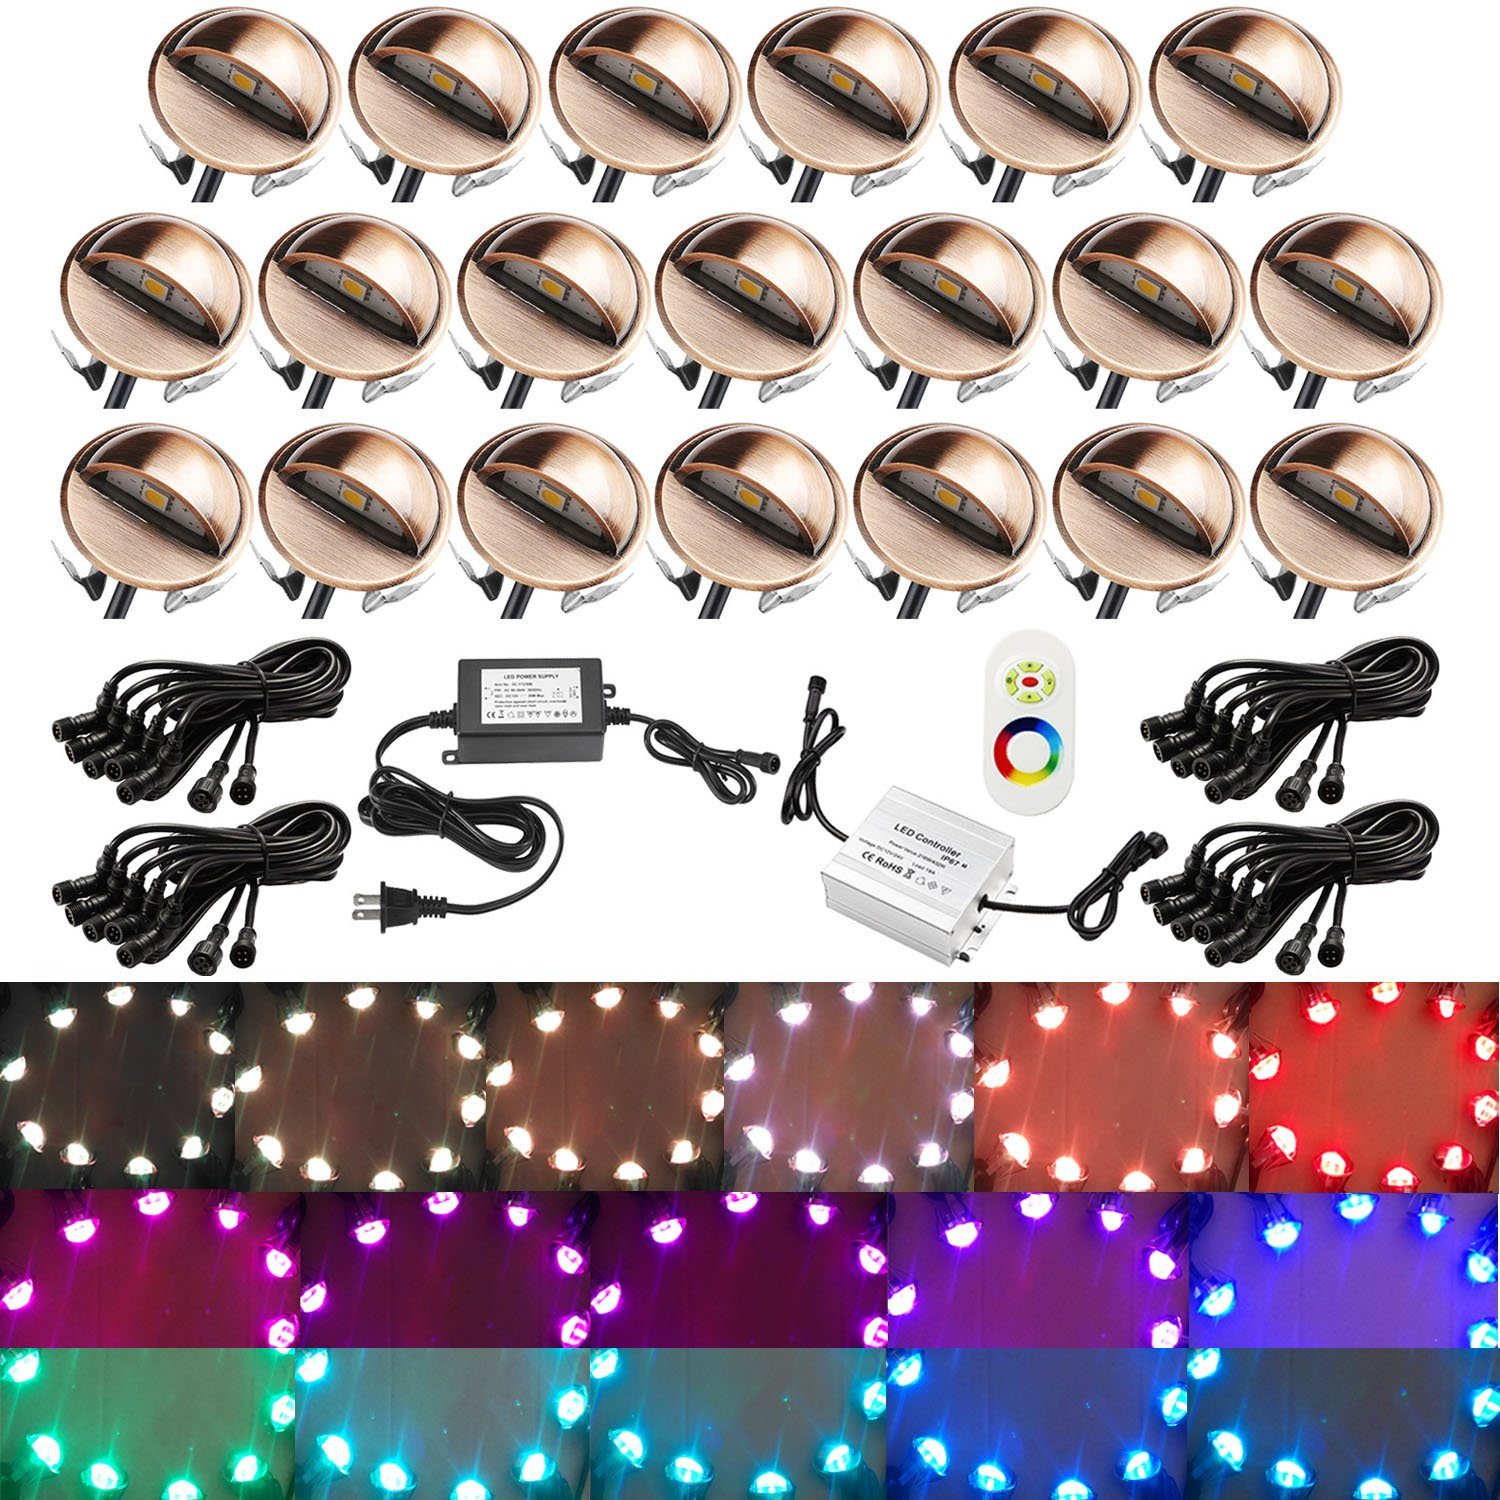 Deck Lighting, QACA Low Voltage Yard Lights DC12V 0.2W~0.4W IP67 Staircase Lamp for Garden,Steps,Stair,Patio,Floor,Pool Deck,Kitchen,Outdoor (20pcs, RGB) by QACA